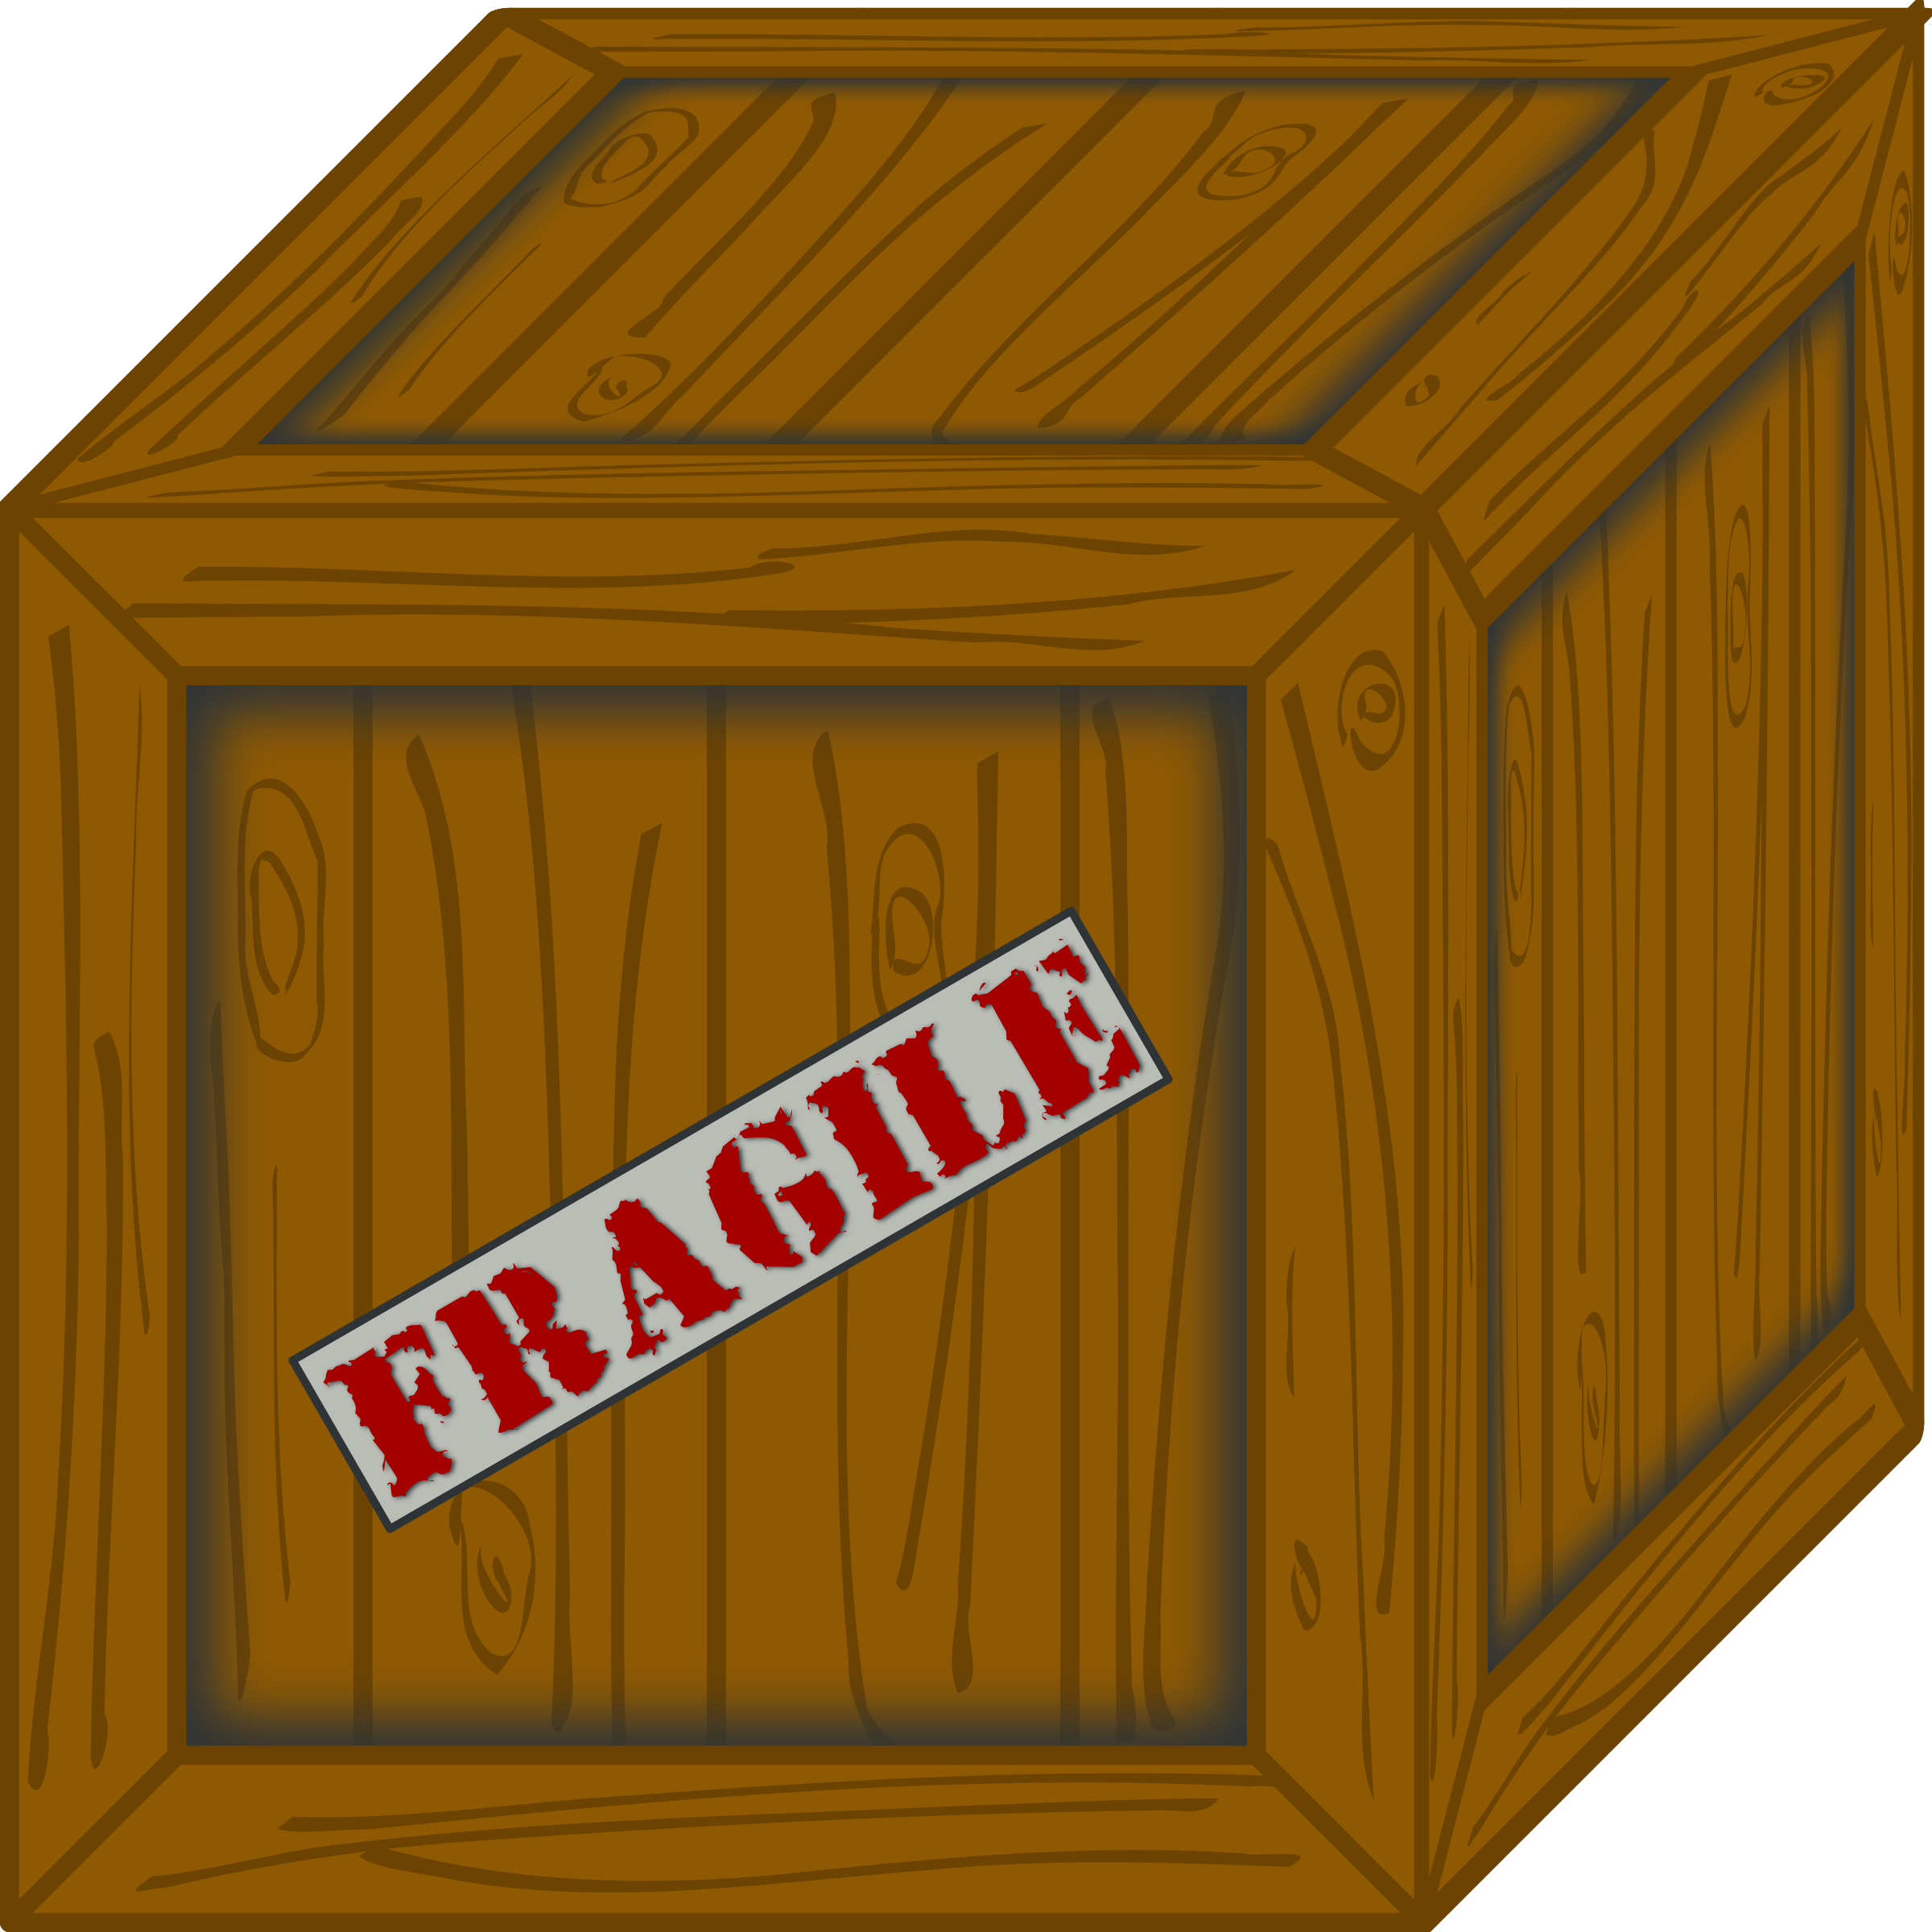 wooden crate by Erulisseuiin